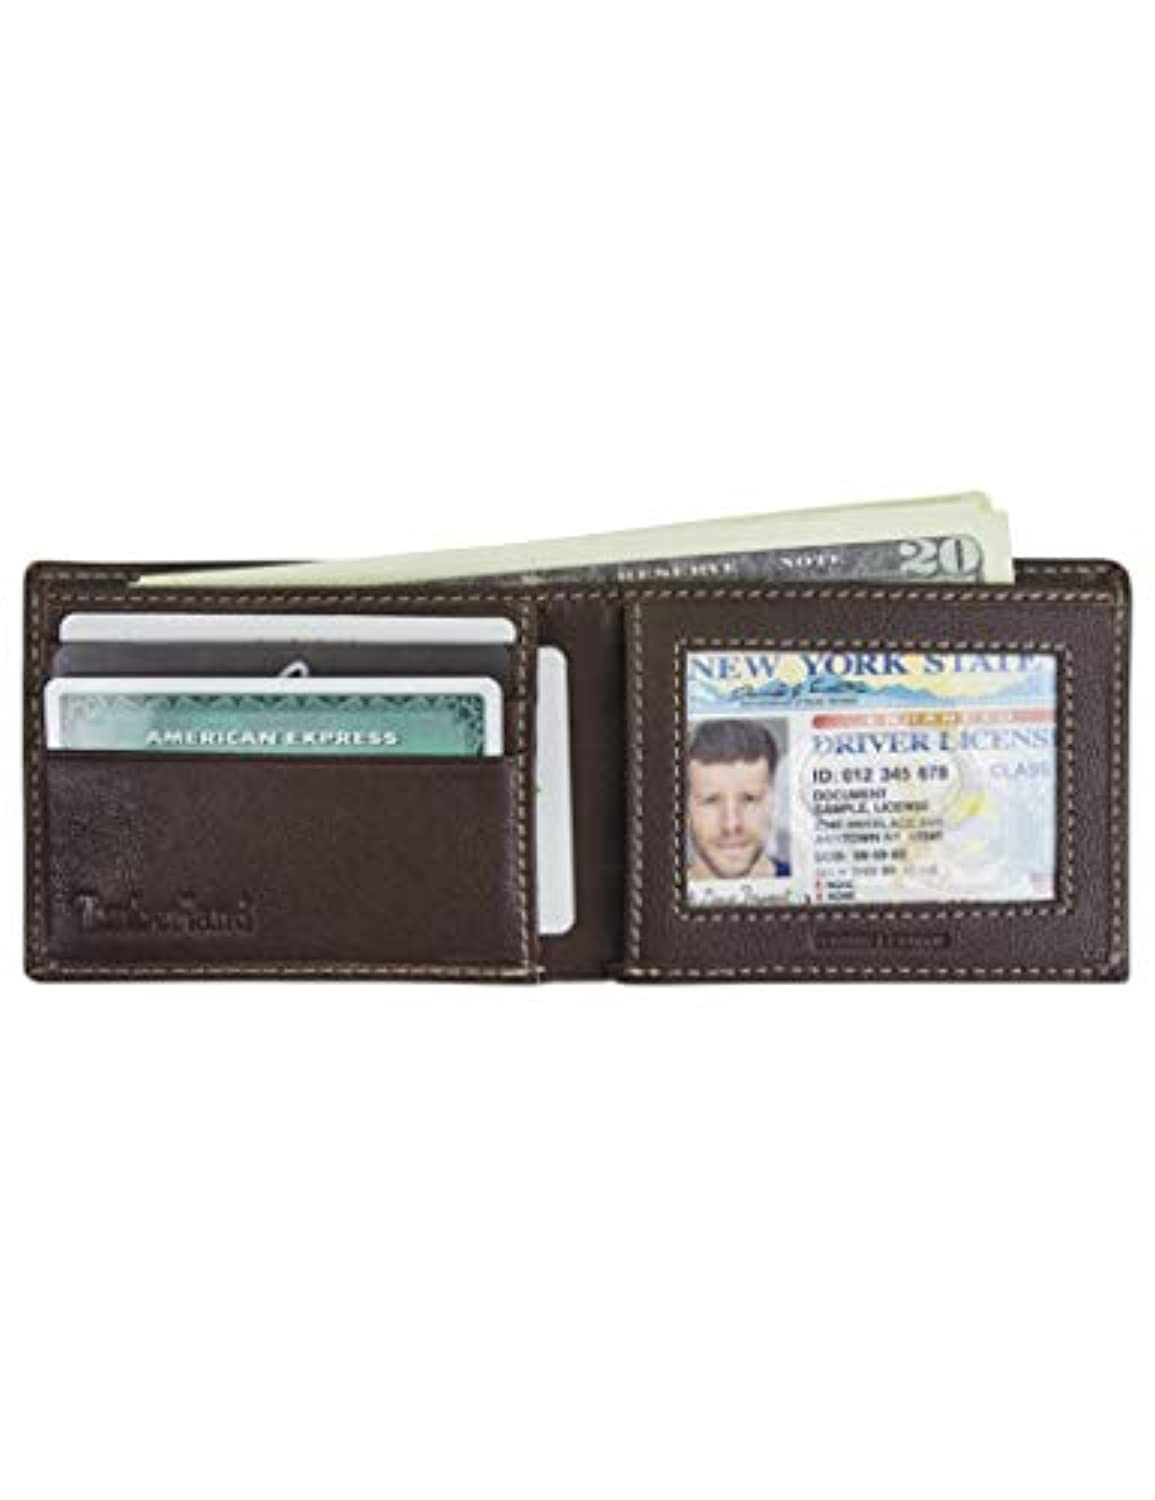 Classier: Buy Timberland Timberland Men's Blix Slimfold Leather Wallet